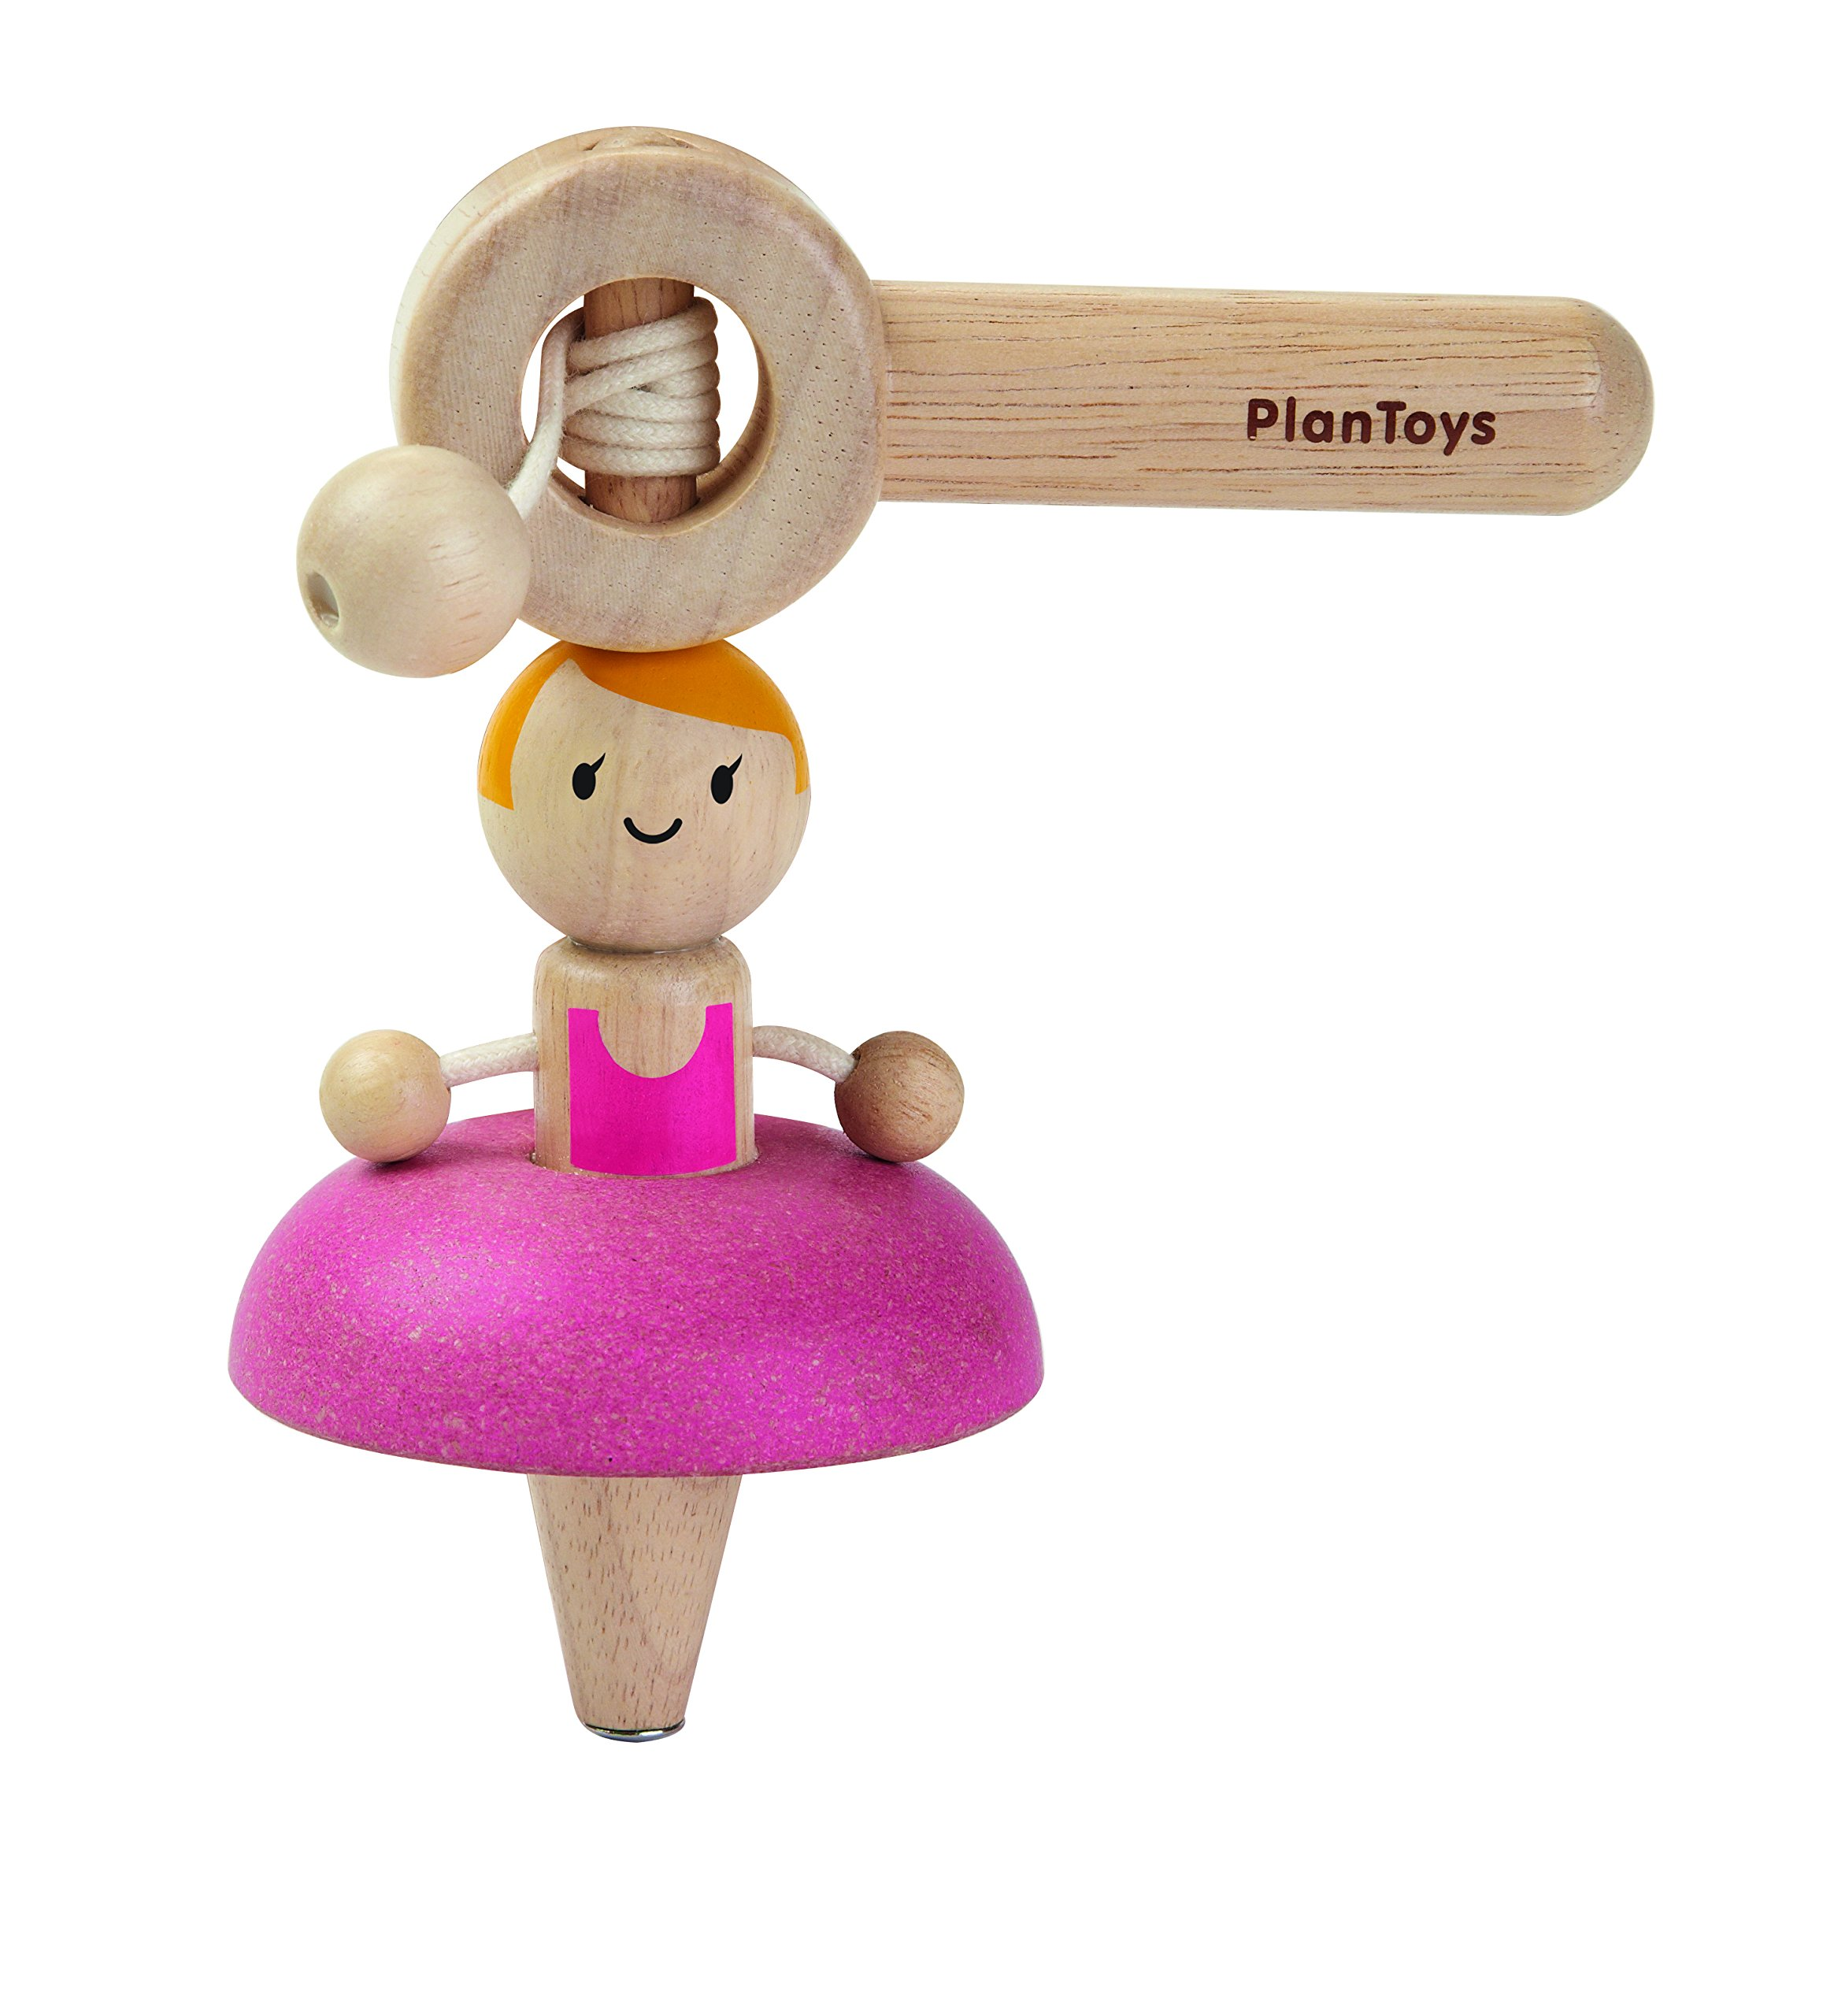 PlanToys Wood Ballet Spinning Top